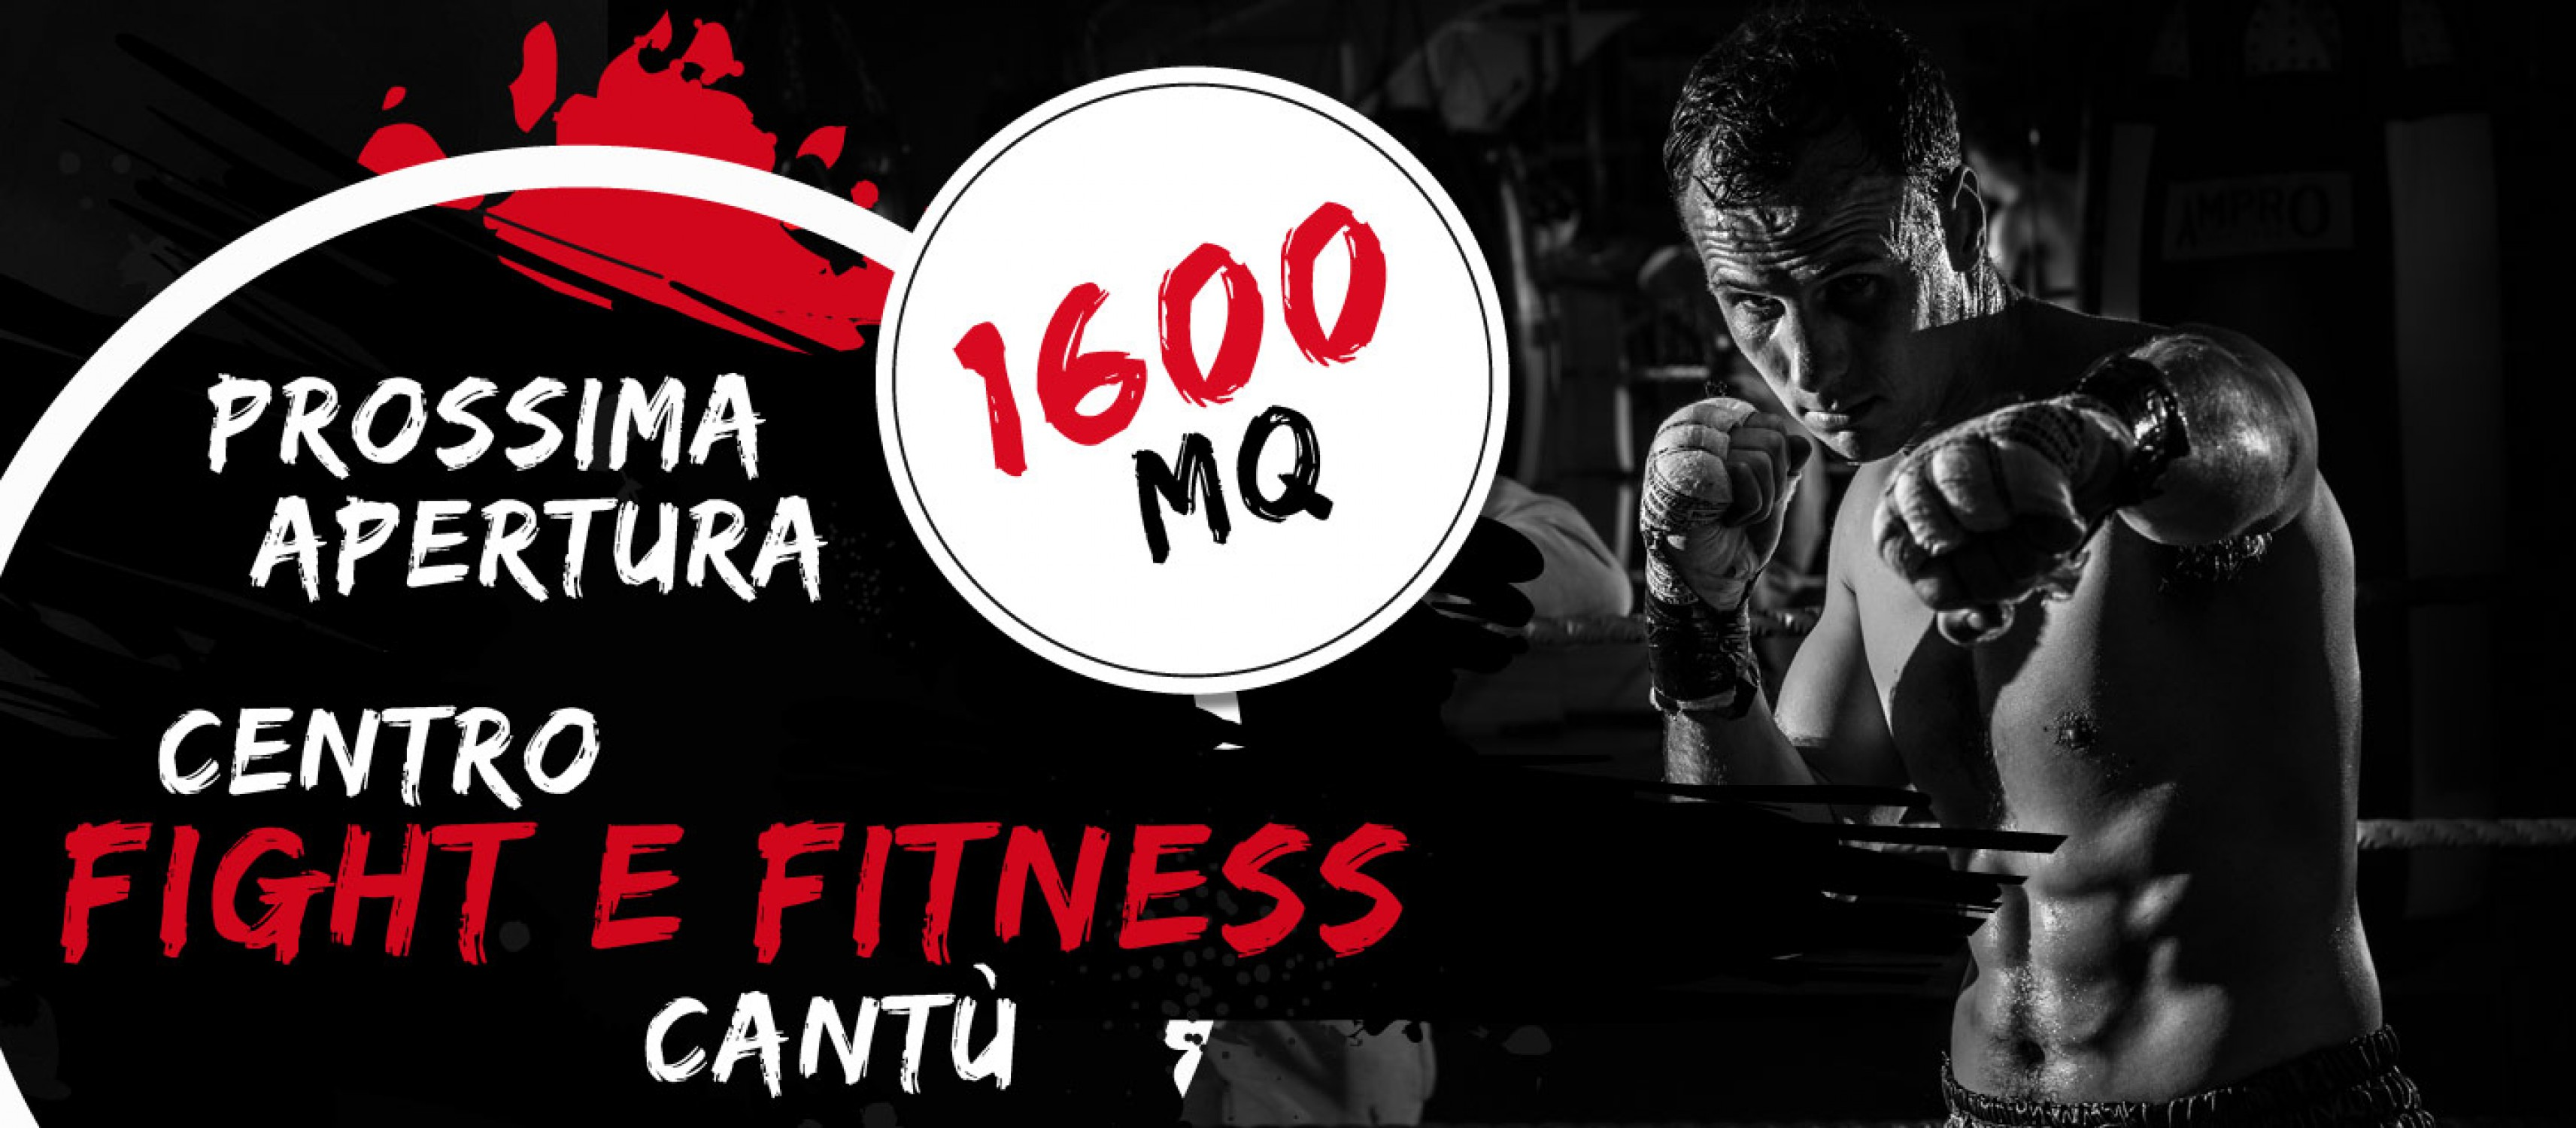 Palestra cantù arenafit nuovo centro fight and fitness